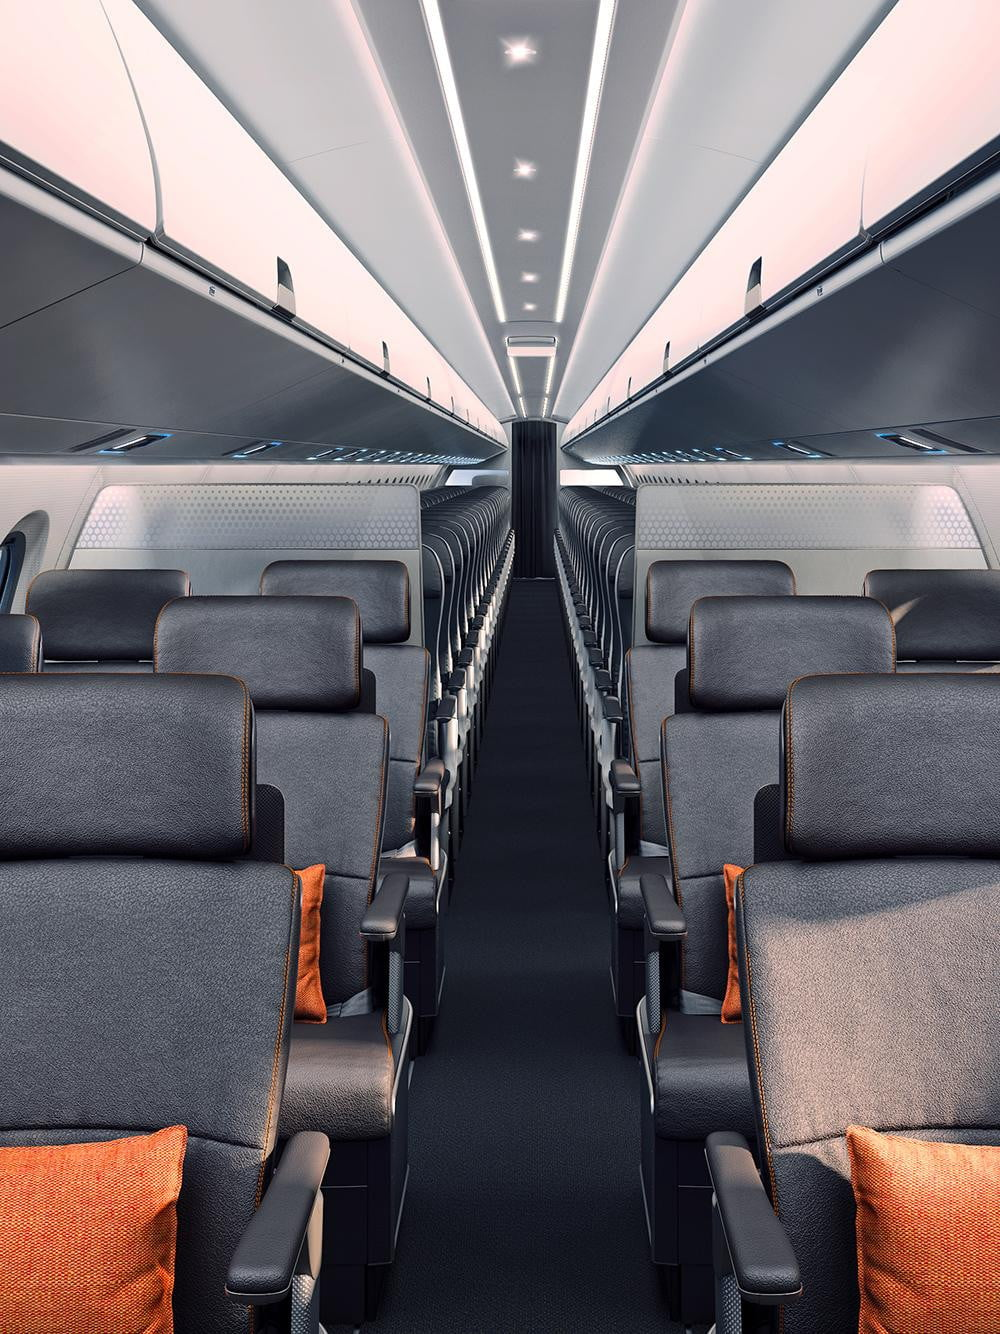 8 best airplane interior design concepts for 2015 for Airplane exterior design